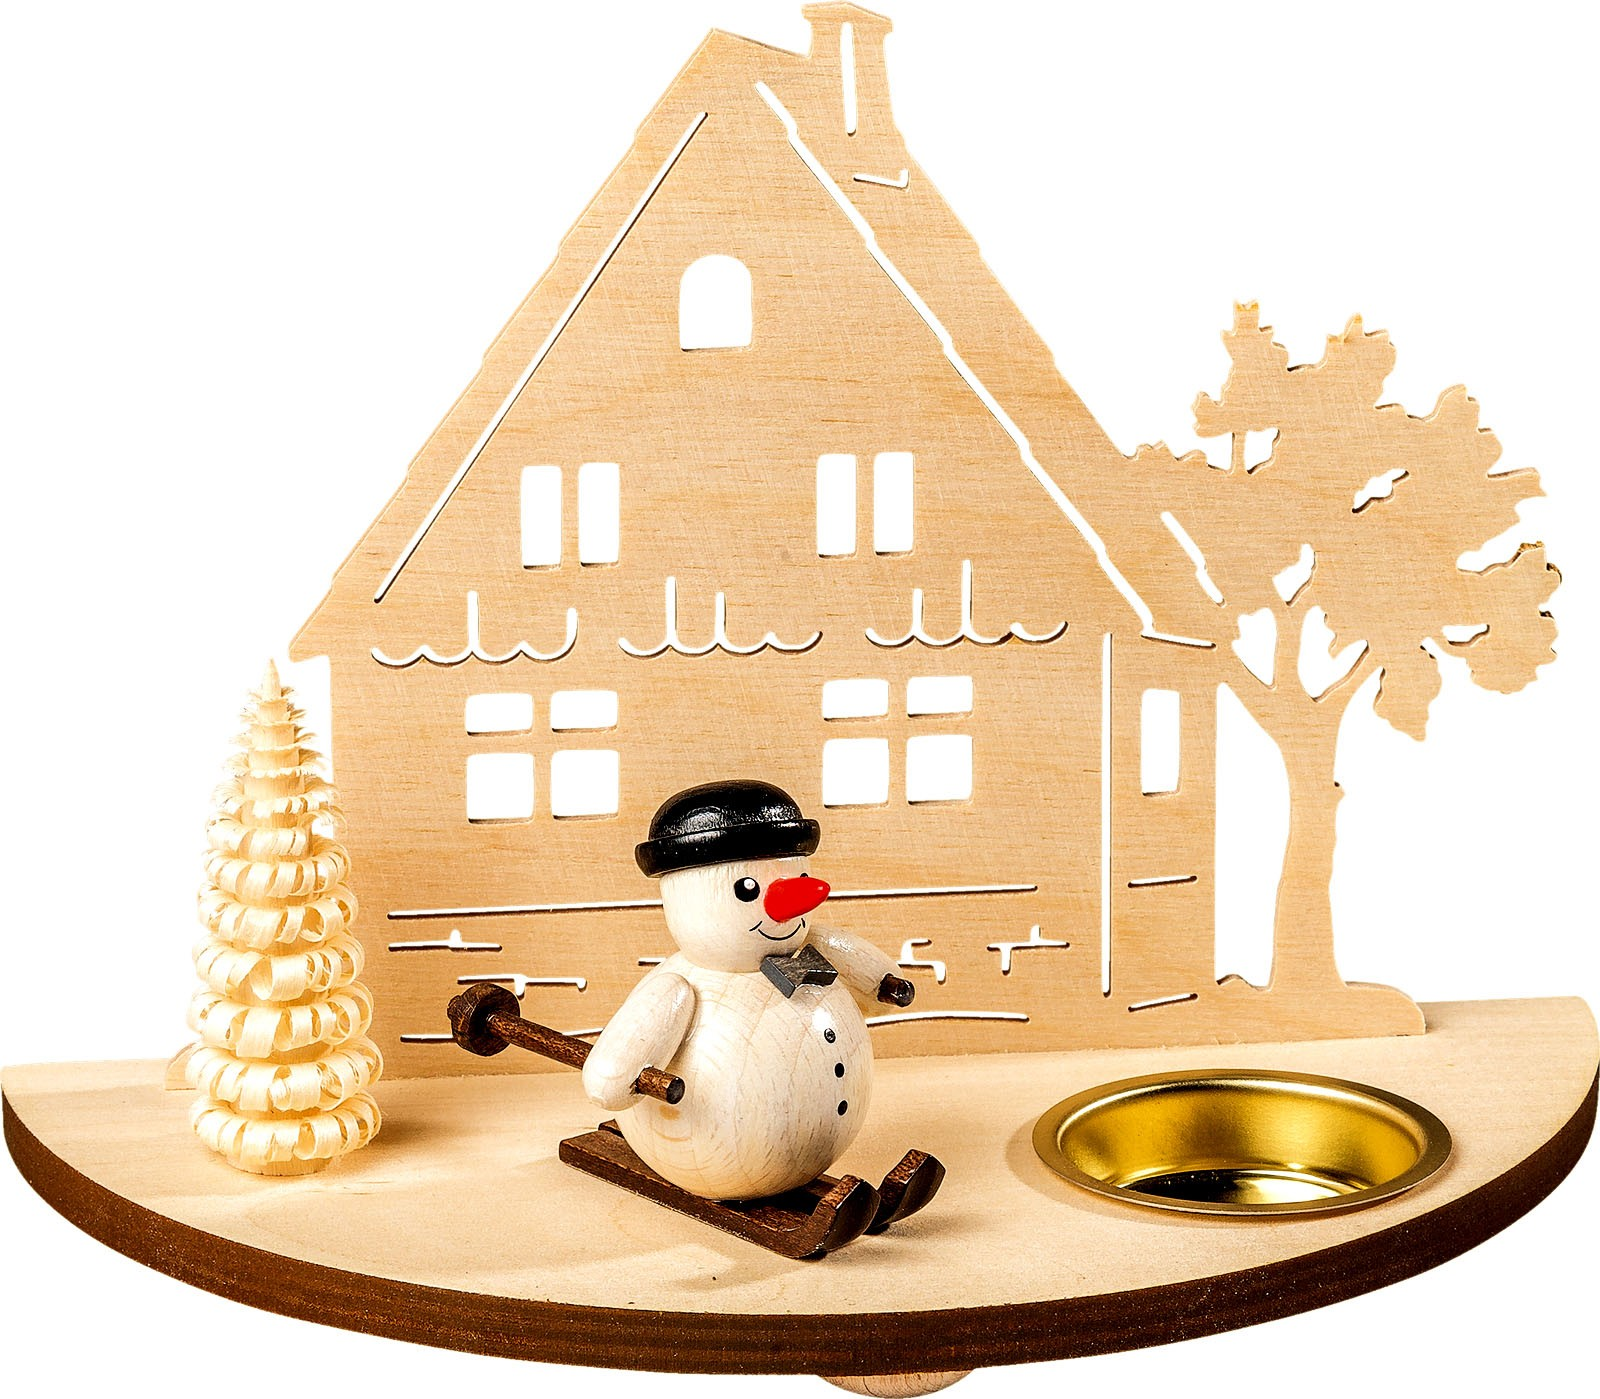 candleholder with figures - snowman, black